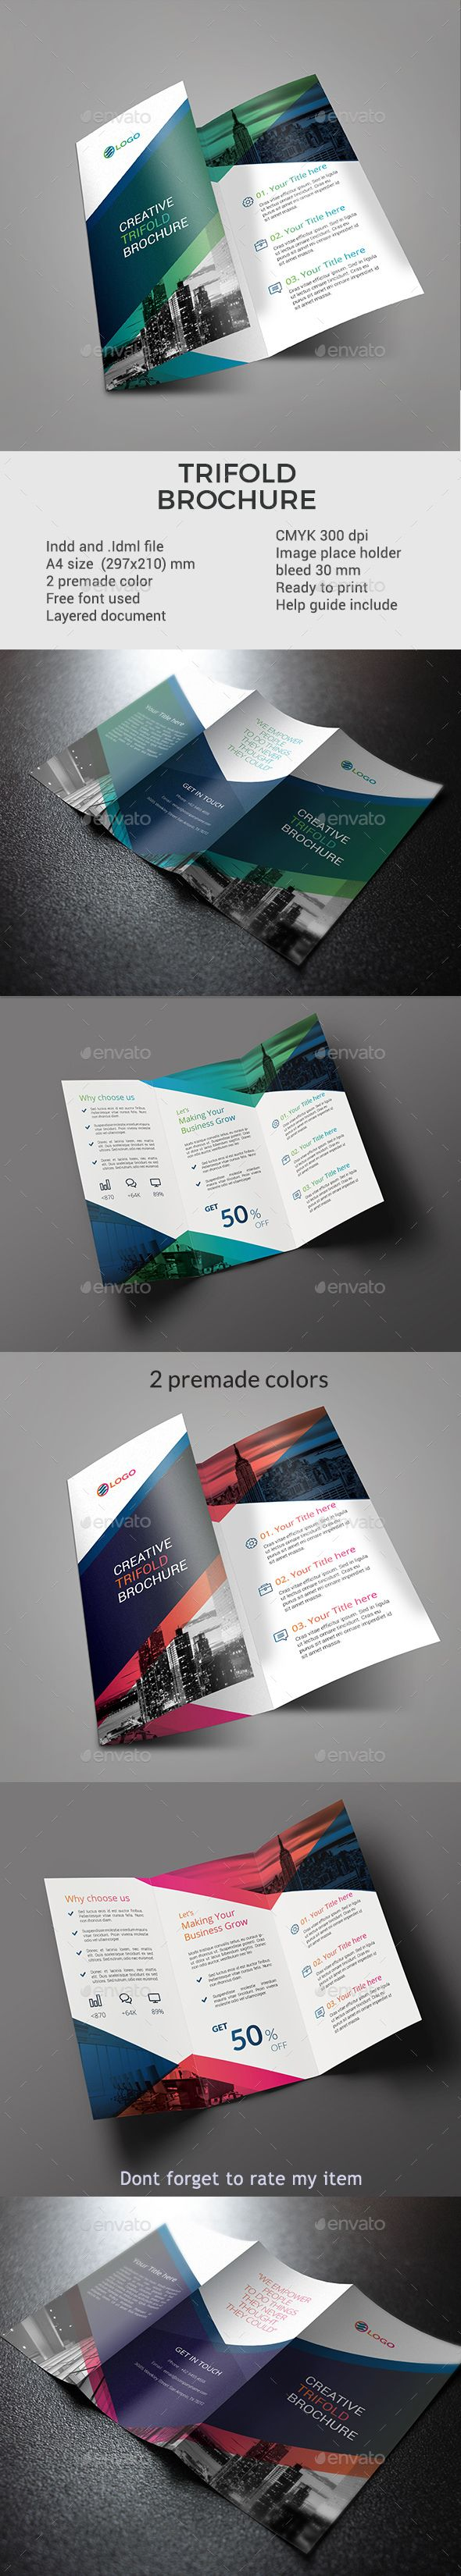 Trifold brochure template | Pinterest